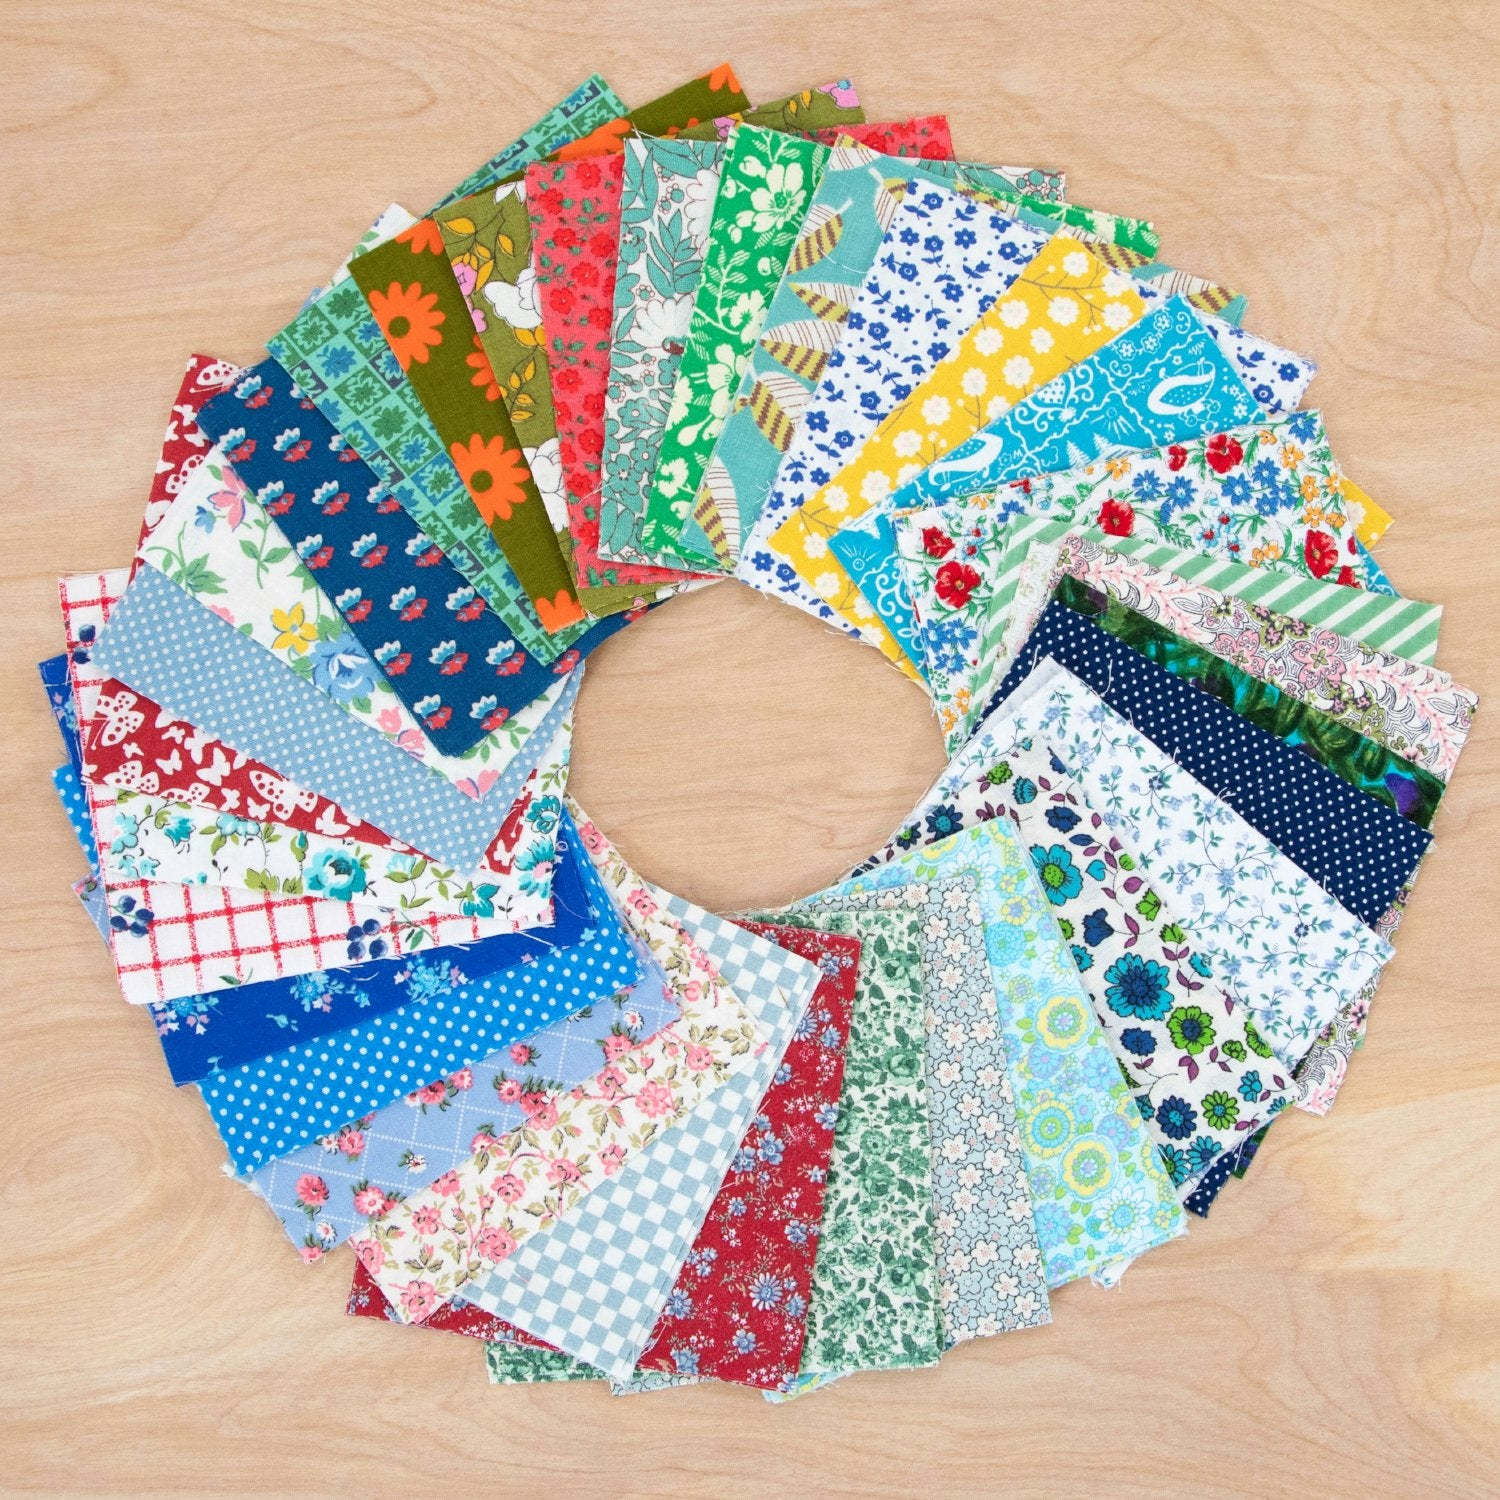 Charm Pack Quilting Fabric / All Vintage Charm Pack / 96 Squares of Vintage Fabric